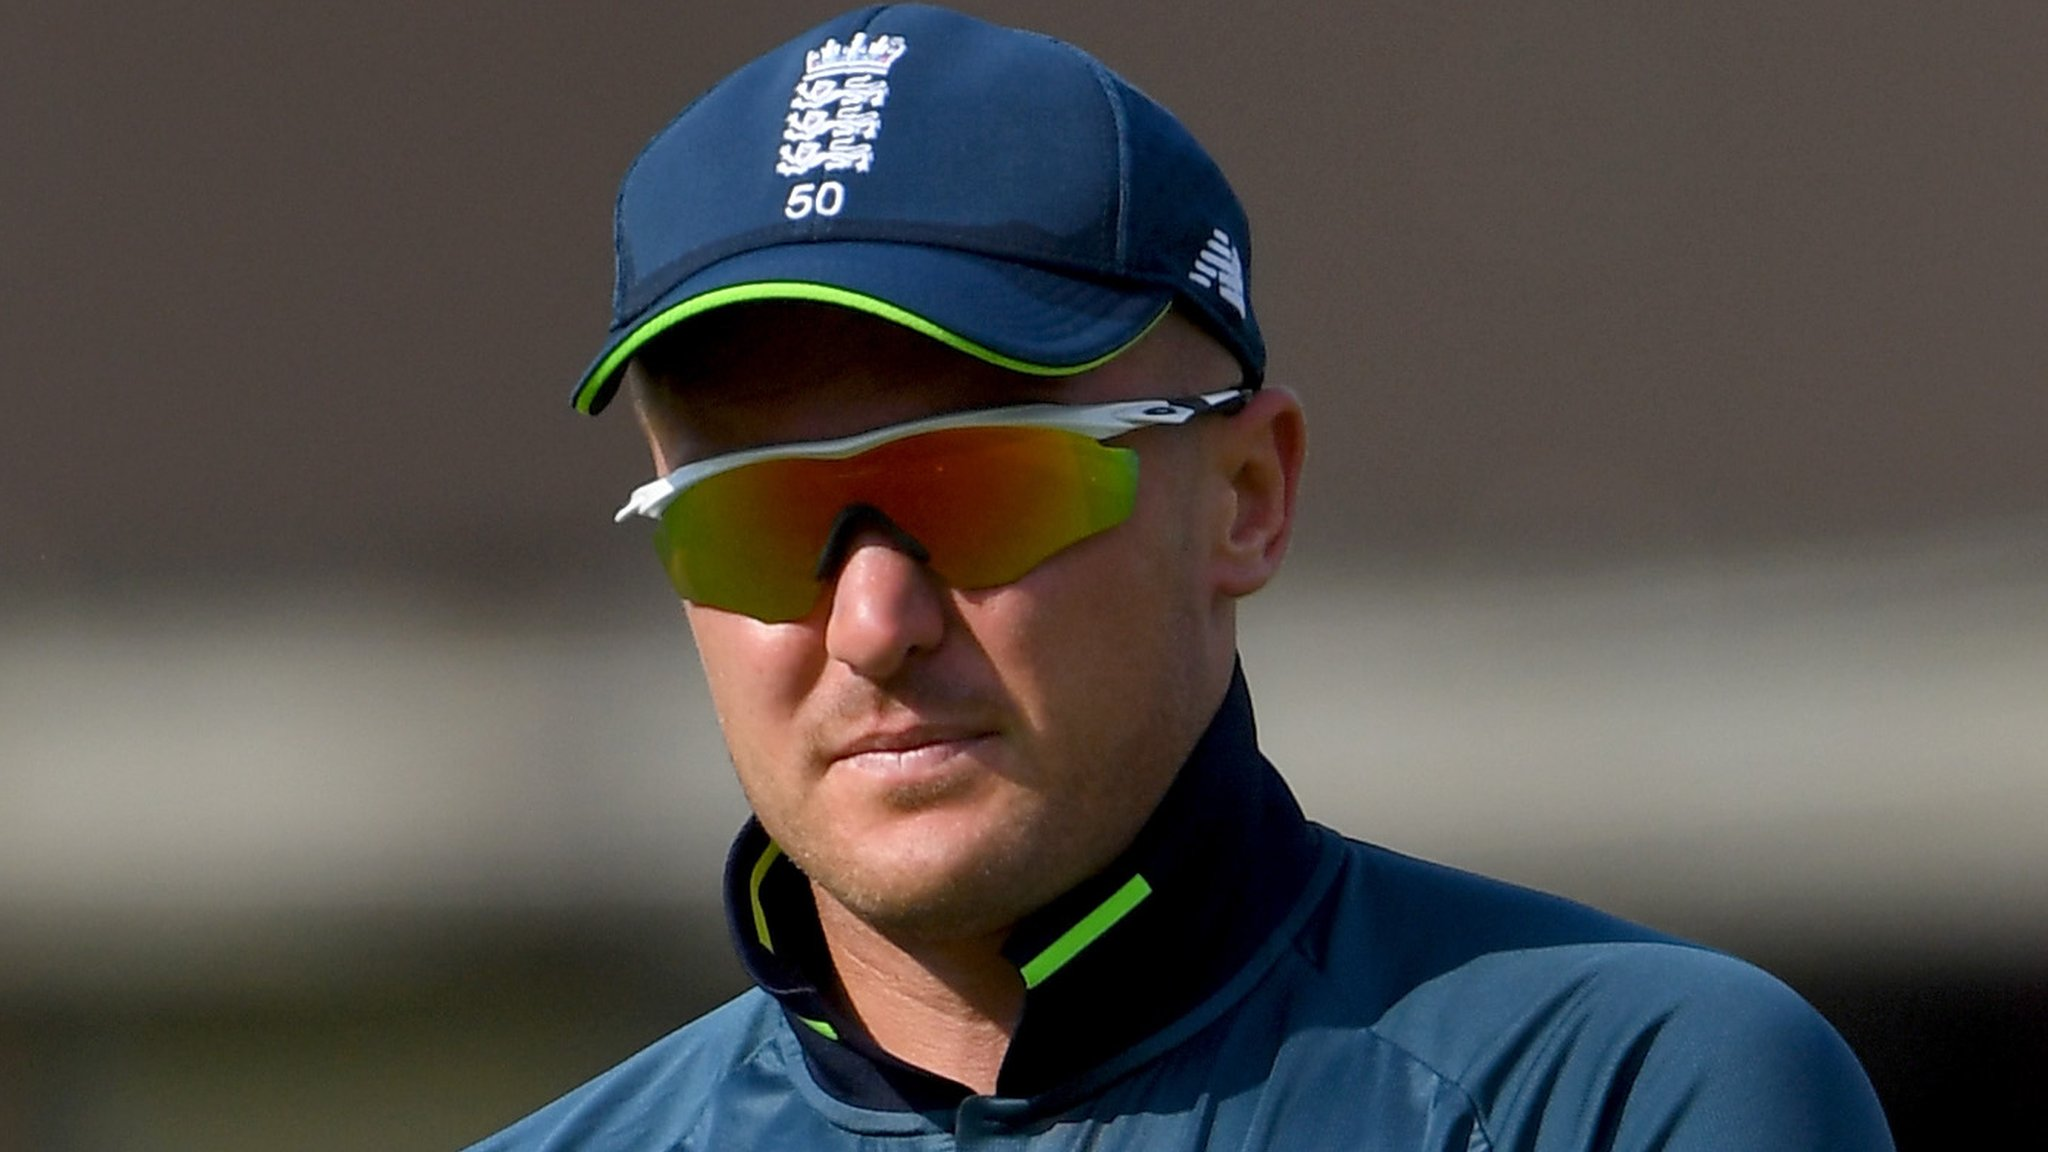 England v India: Jason Roy finger injury concern for deciding ODI